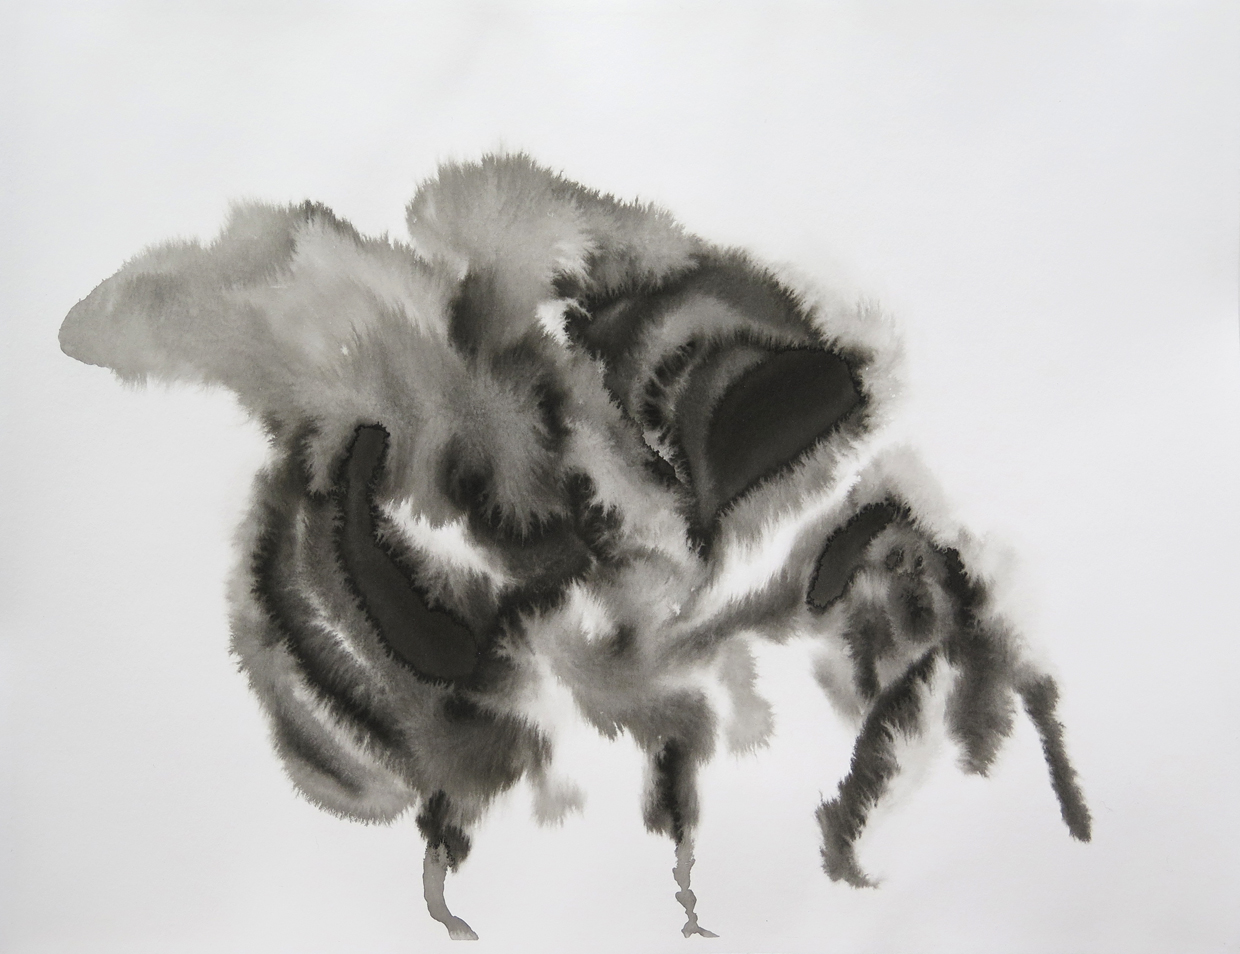 Bee 08   Ink on paper, 10.6 in. x 13.8 in. 2013